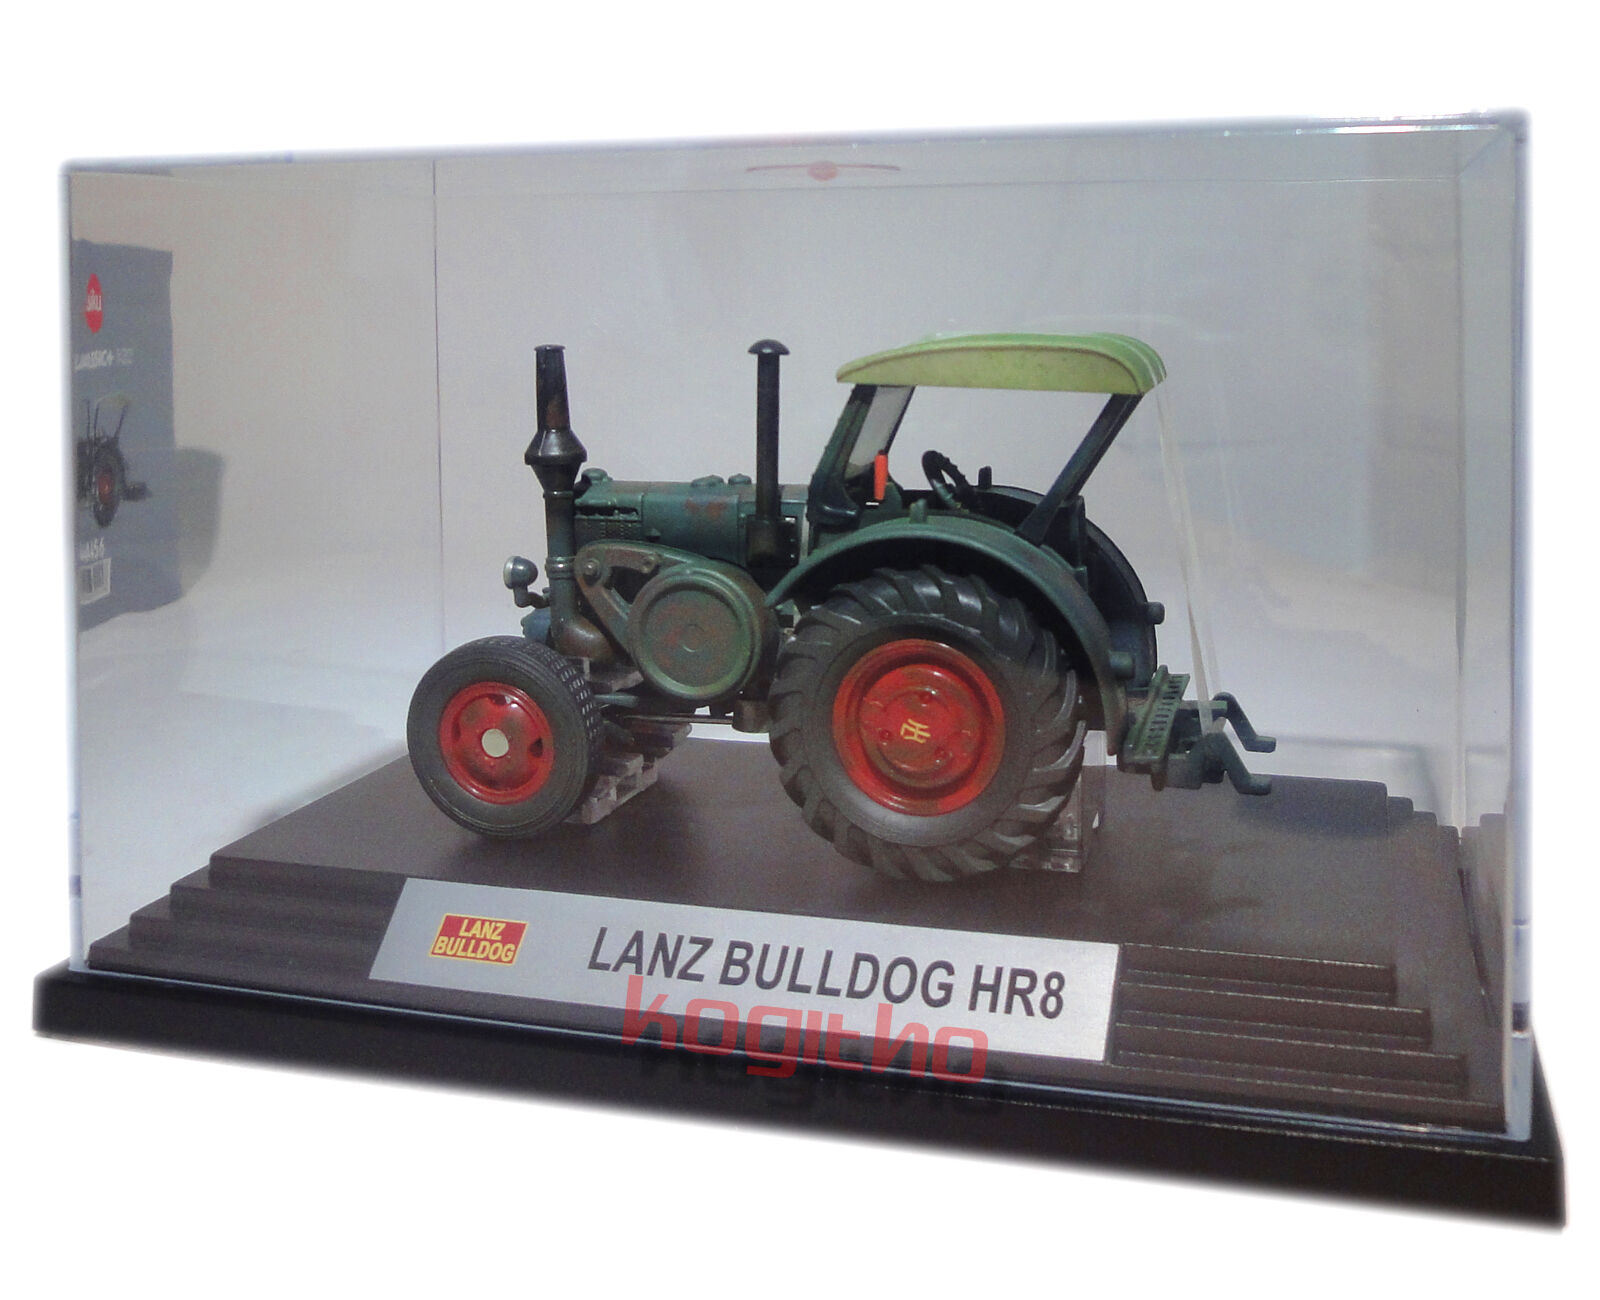 Siku Classic LANZ BULLDOG 4456 1 3 2 HR8 Rarity Agriculture Tractor Model